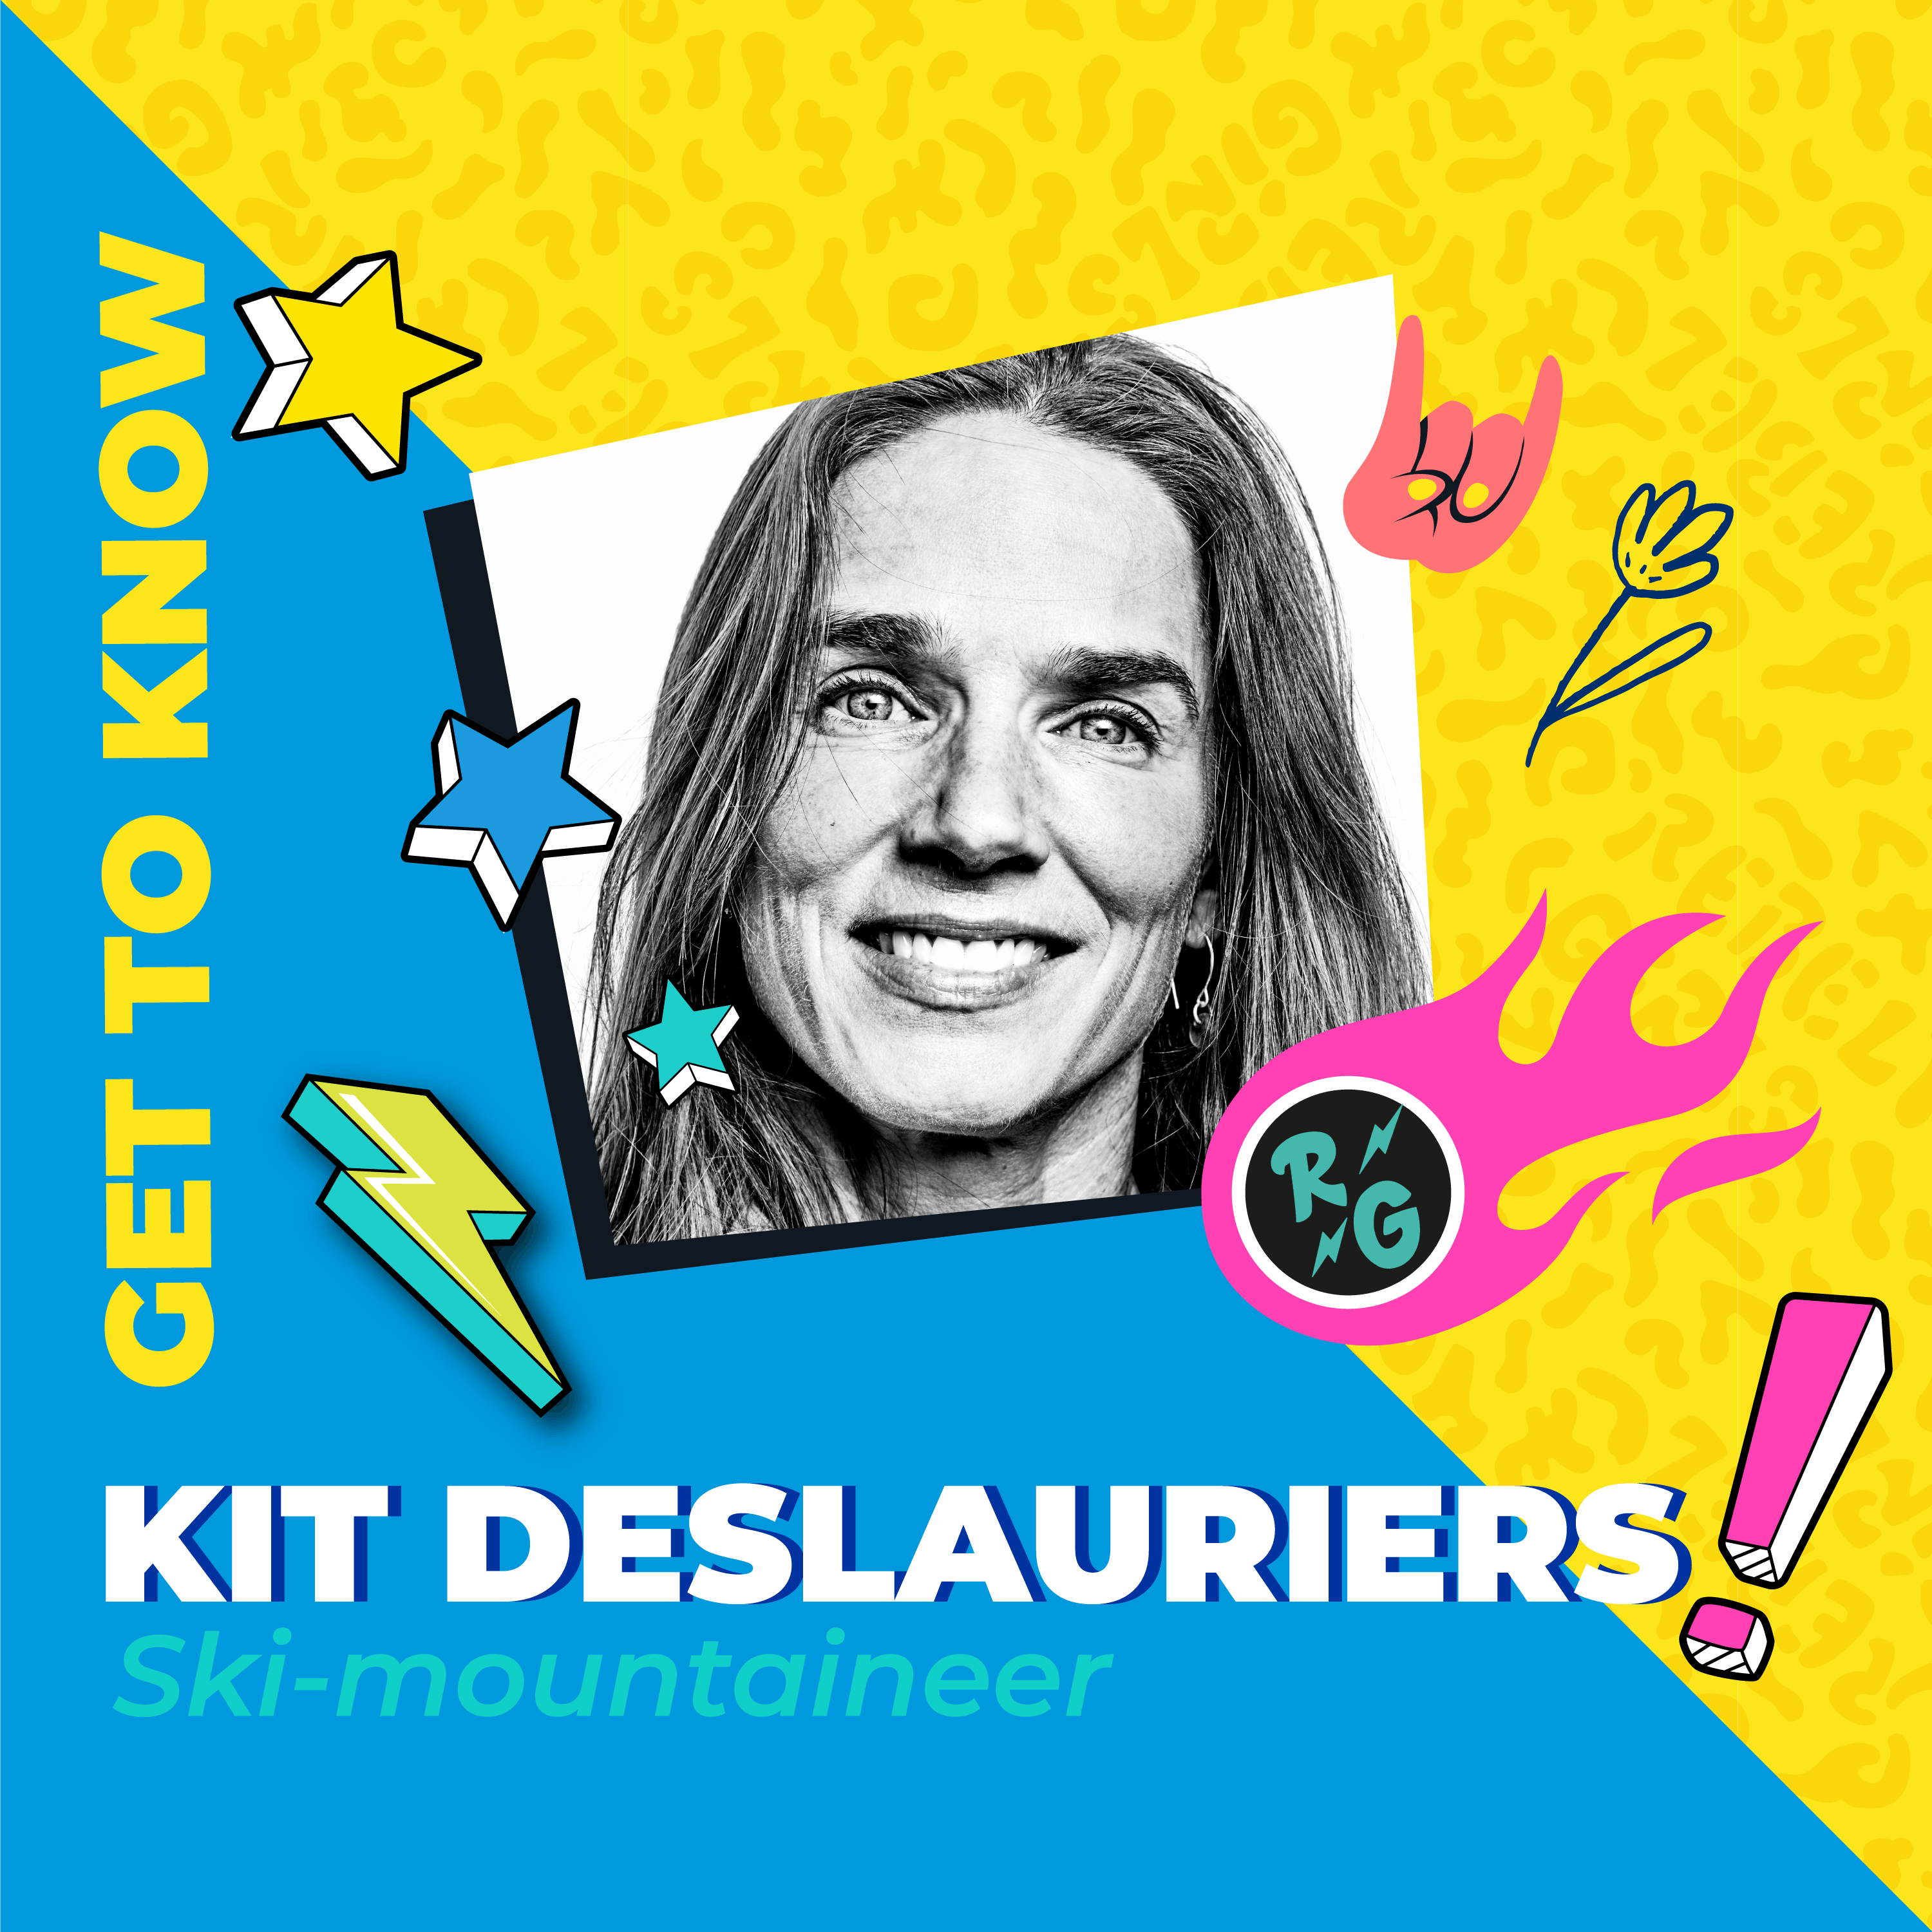 Get To Know Kit DesLauriers